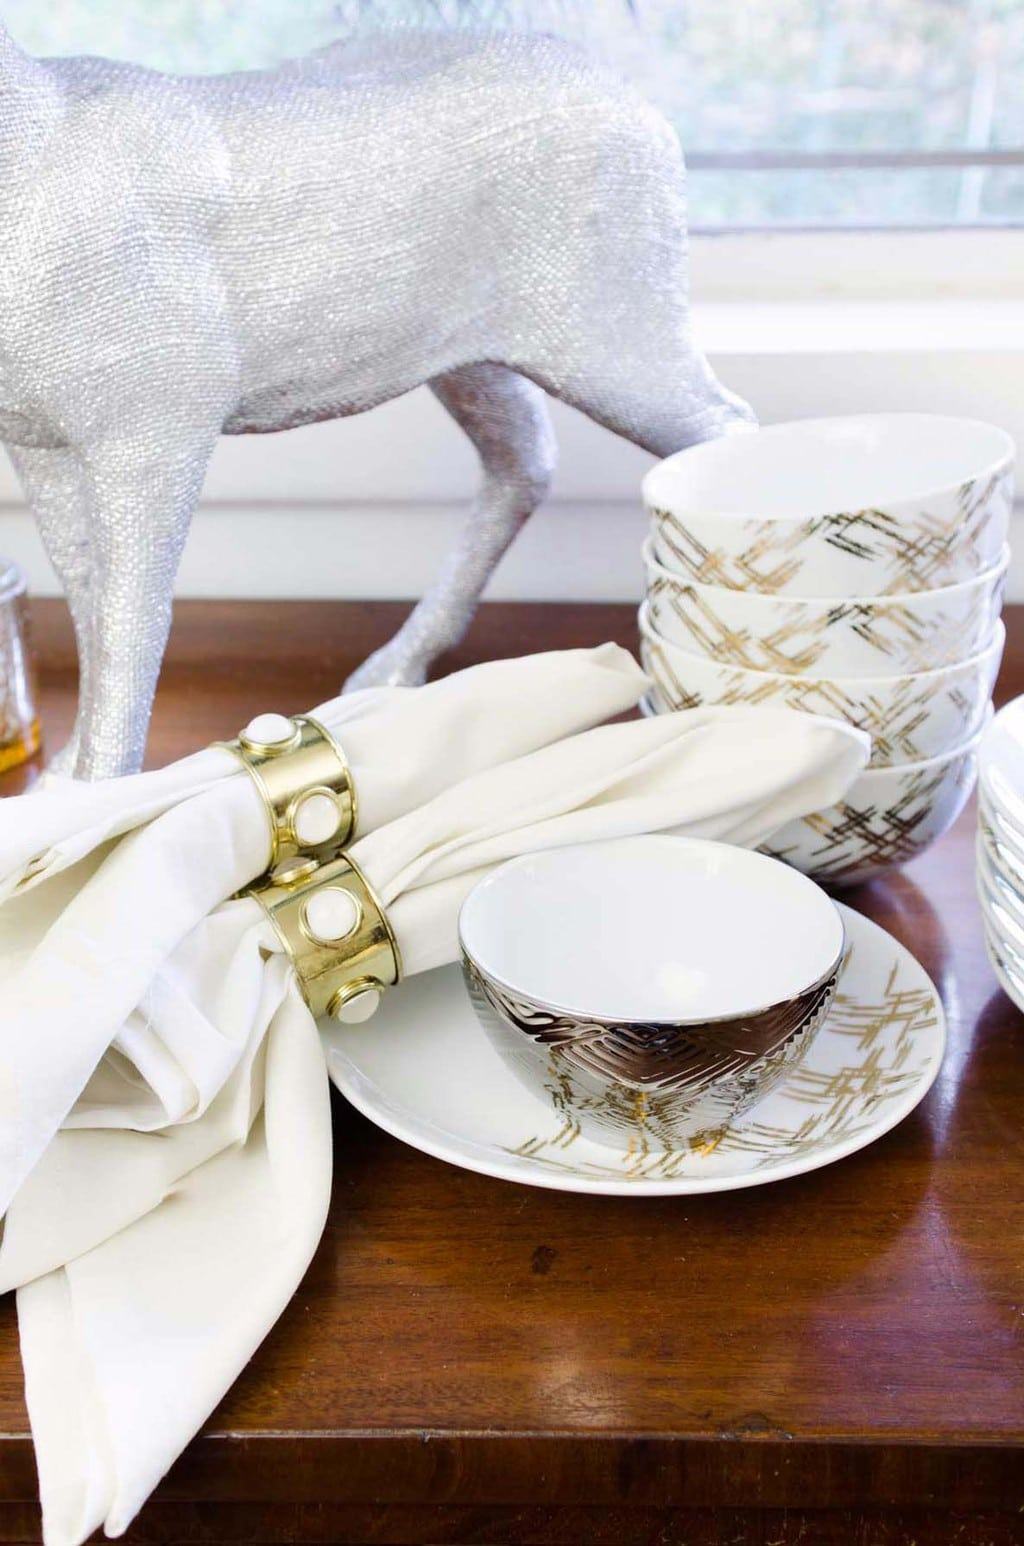 Entertaining essentials on the buffet for easy holiday entertaining